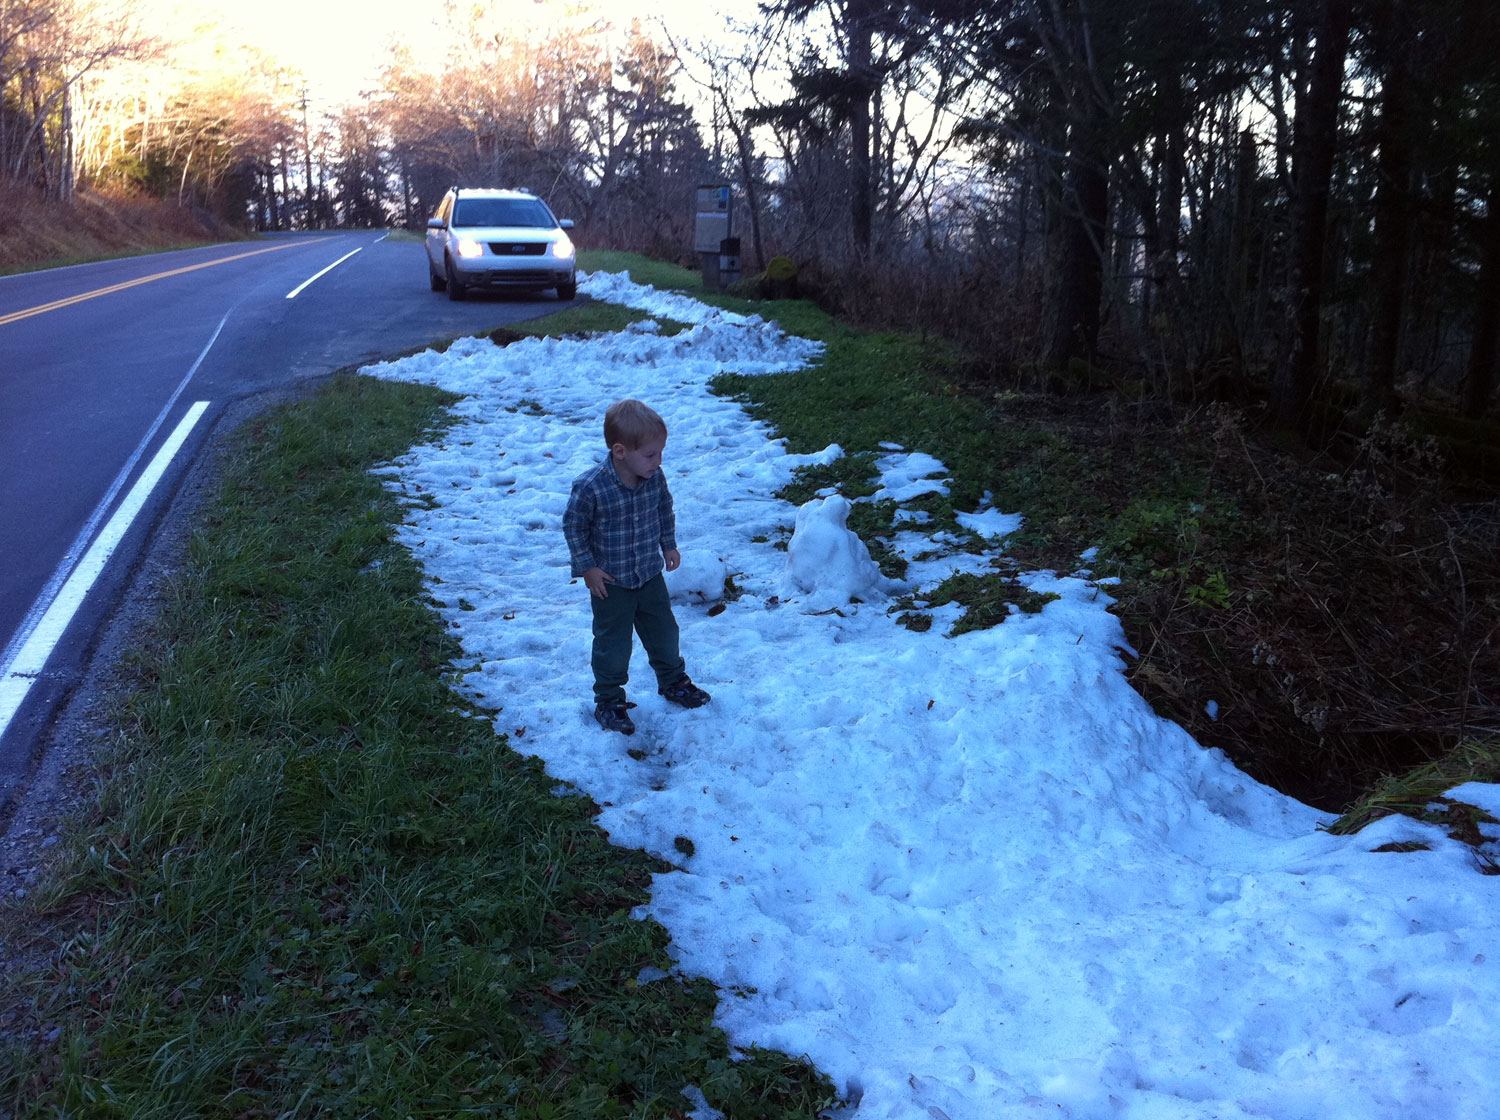 First snow of the season for the kids - high (>6000ft) on Clingman's Dome